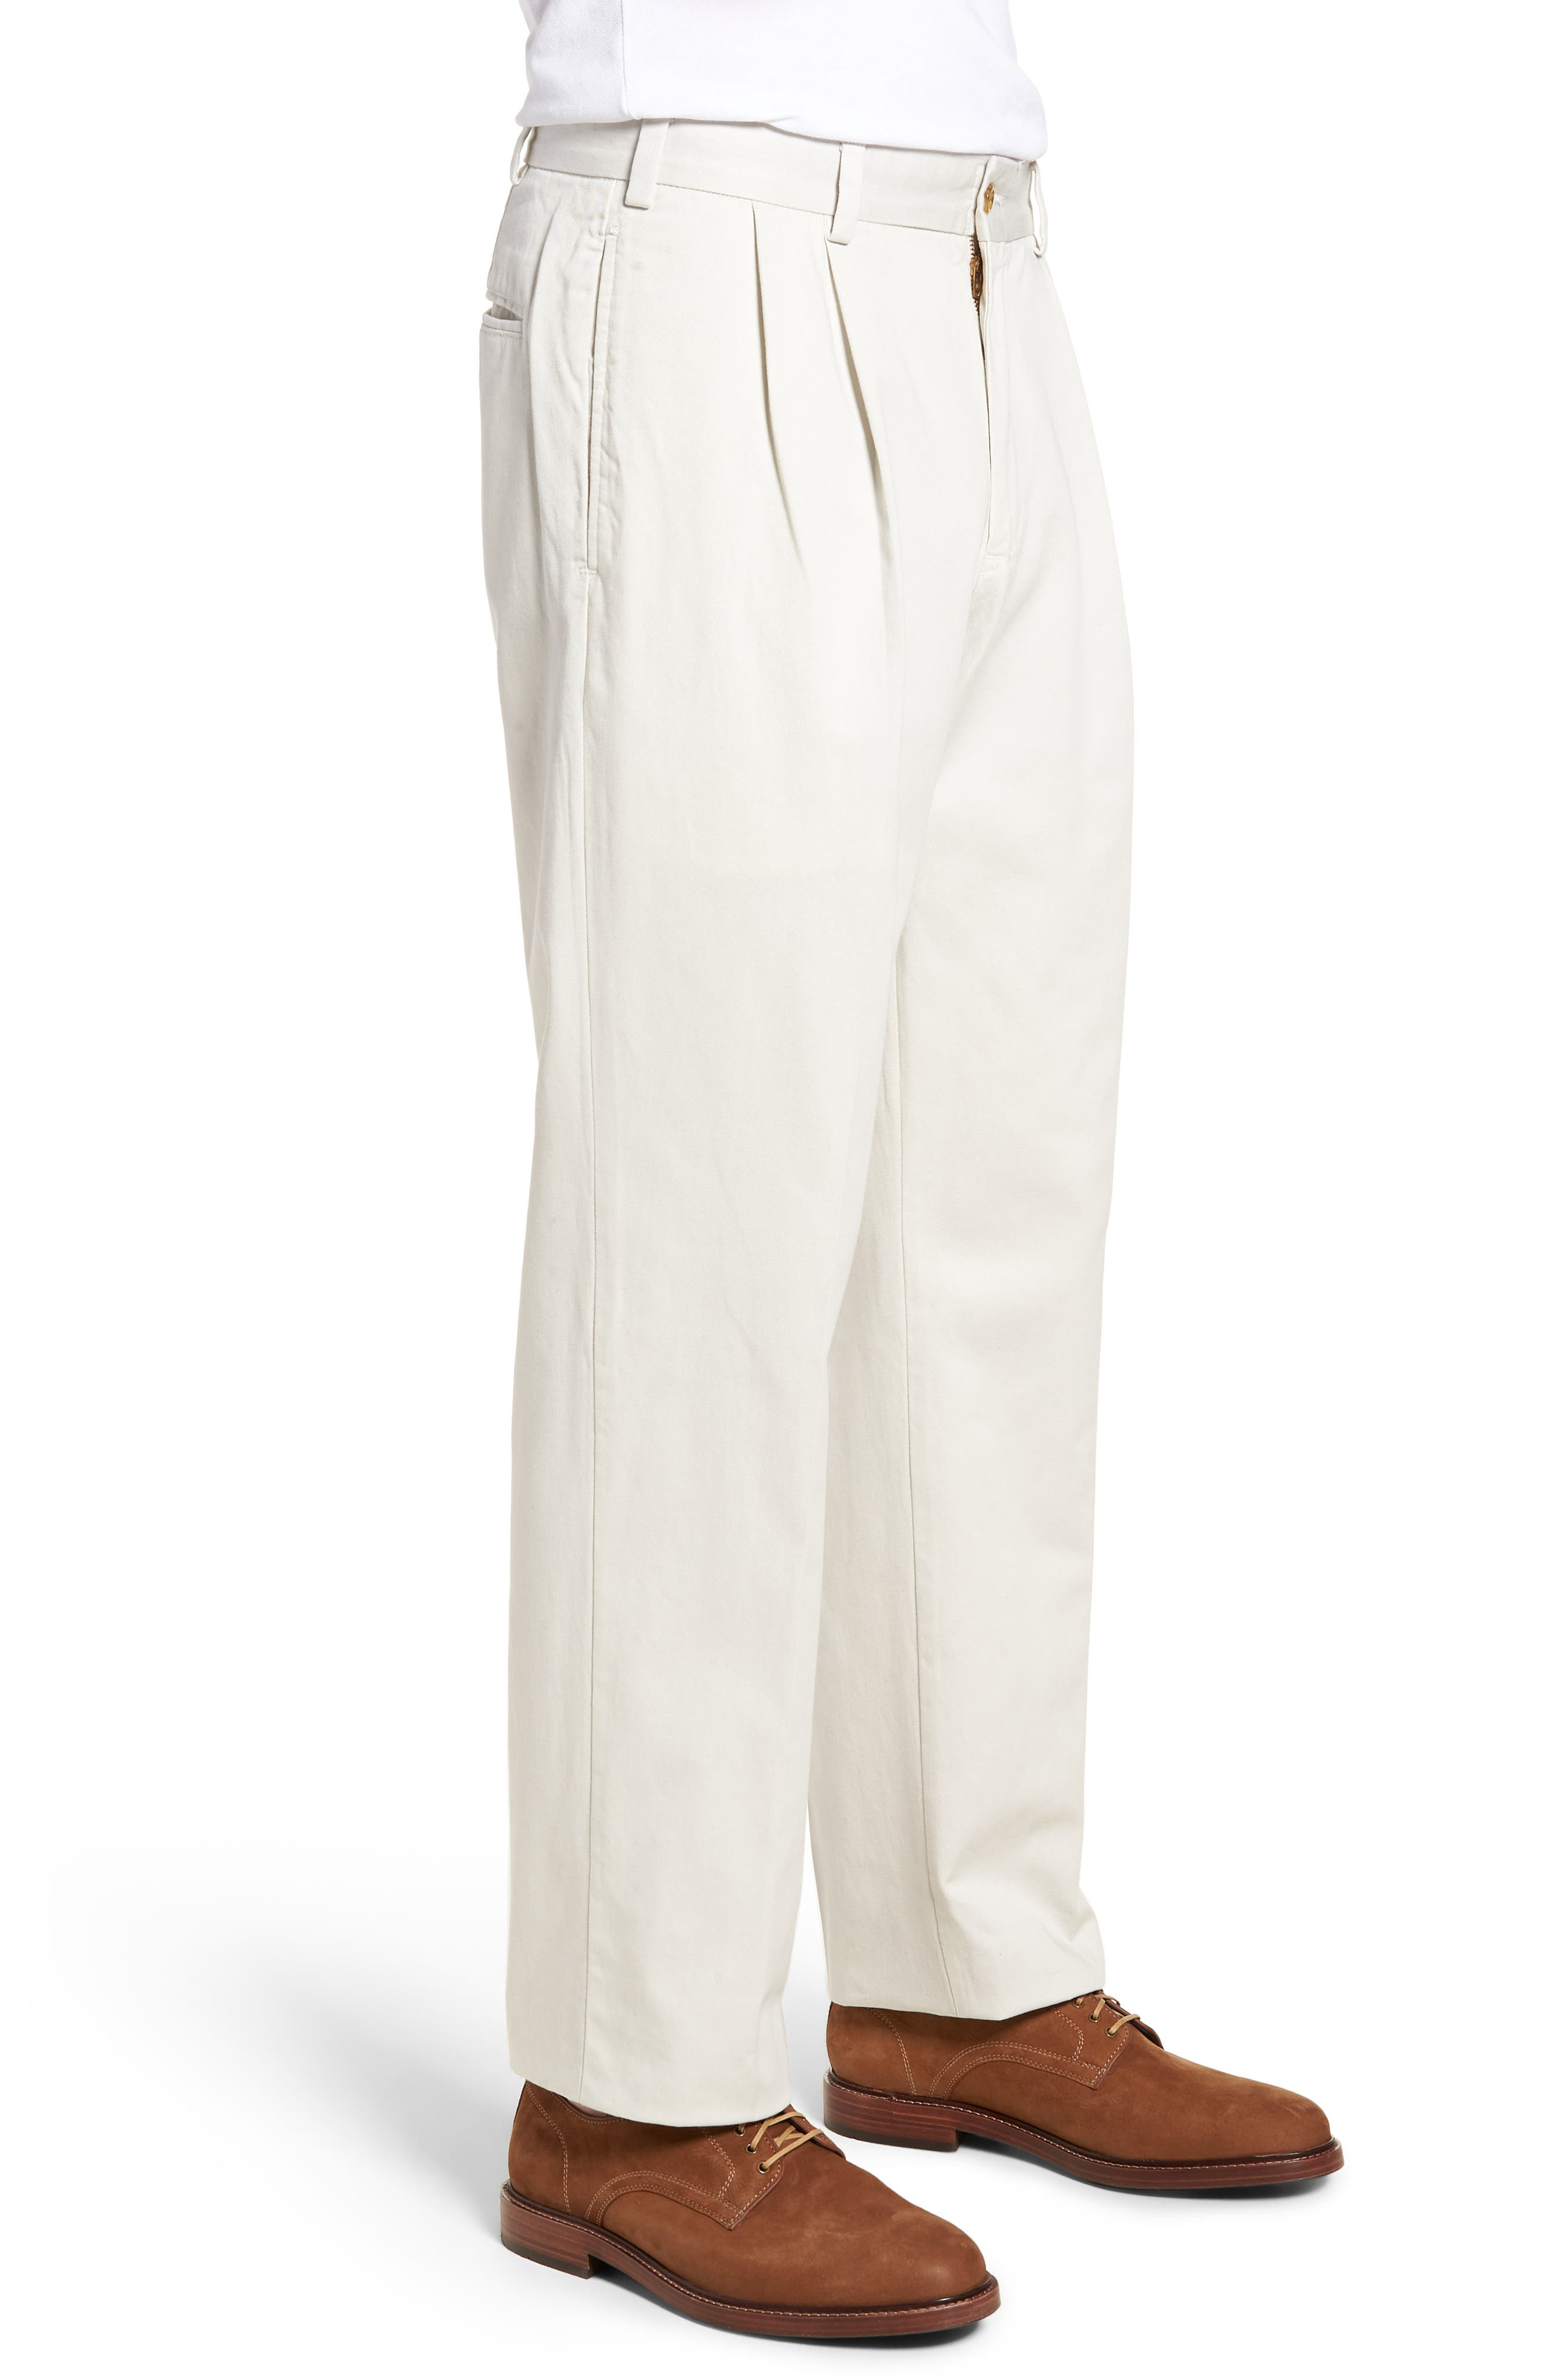 M2 Classic Fit Vintage Twill Pleated Pants,                             Alternate thumbnail 3, color,                             Stone